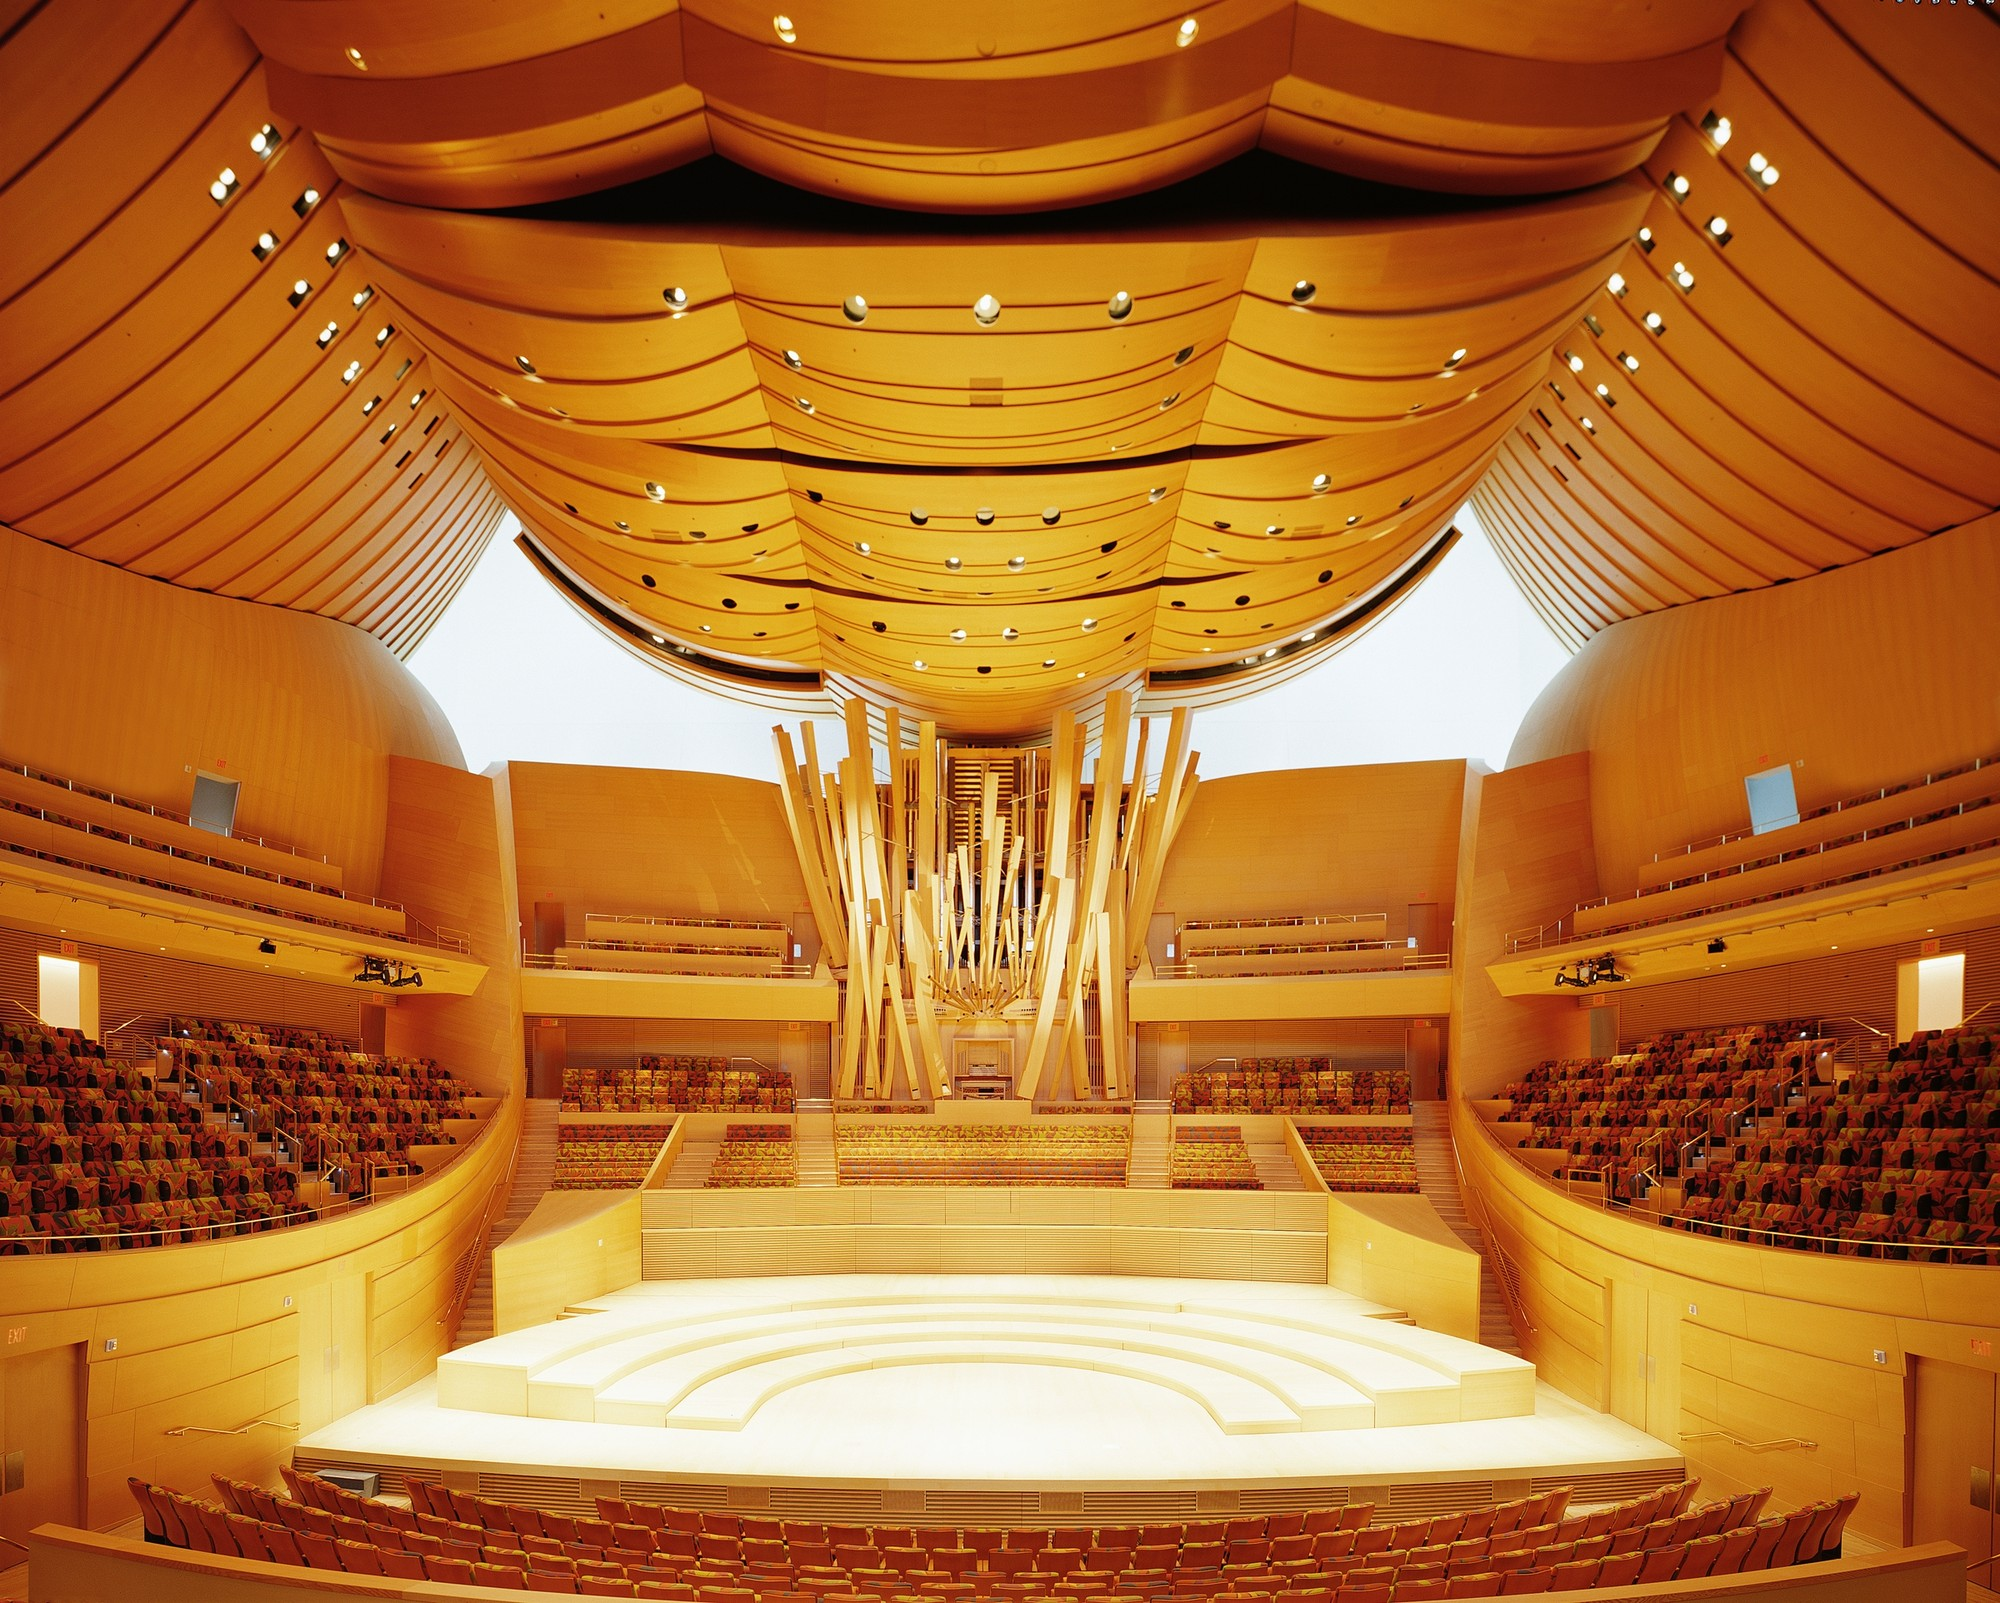 https://audiophilereview.com/images/13-DisneyHall-Interior.jpg